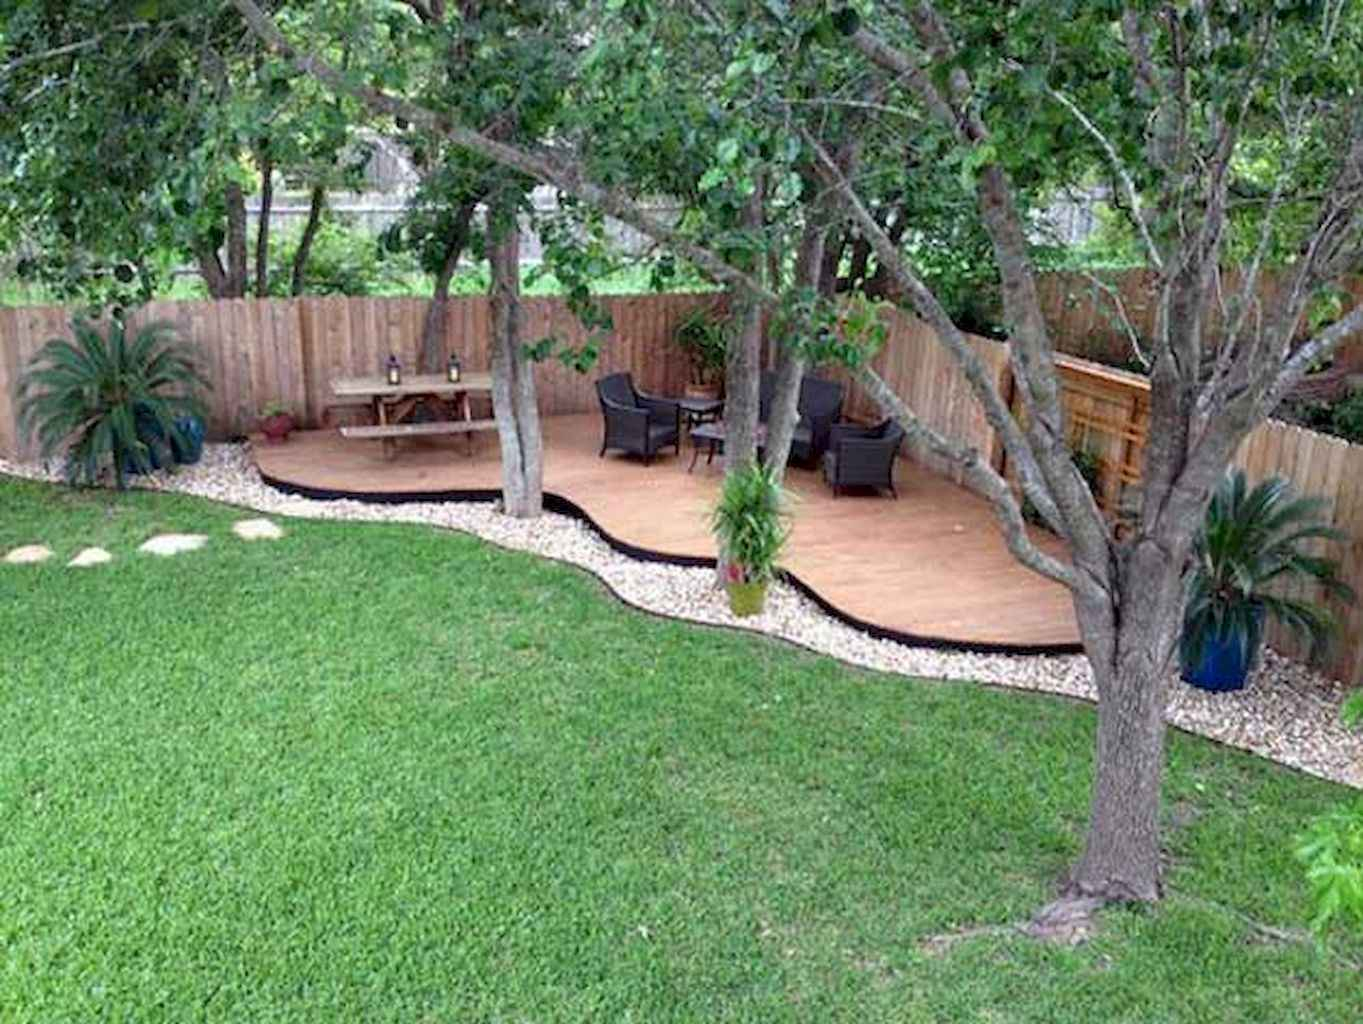 60 Fresh Backyard Landscaping Design Ideas On A Budget Coachdecor in 13 Smart Initiatives of How to Make Backyard Landscape Design Ideas On A Budget